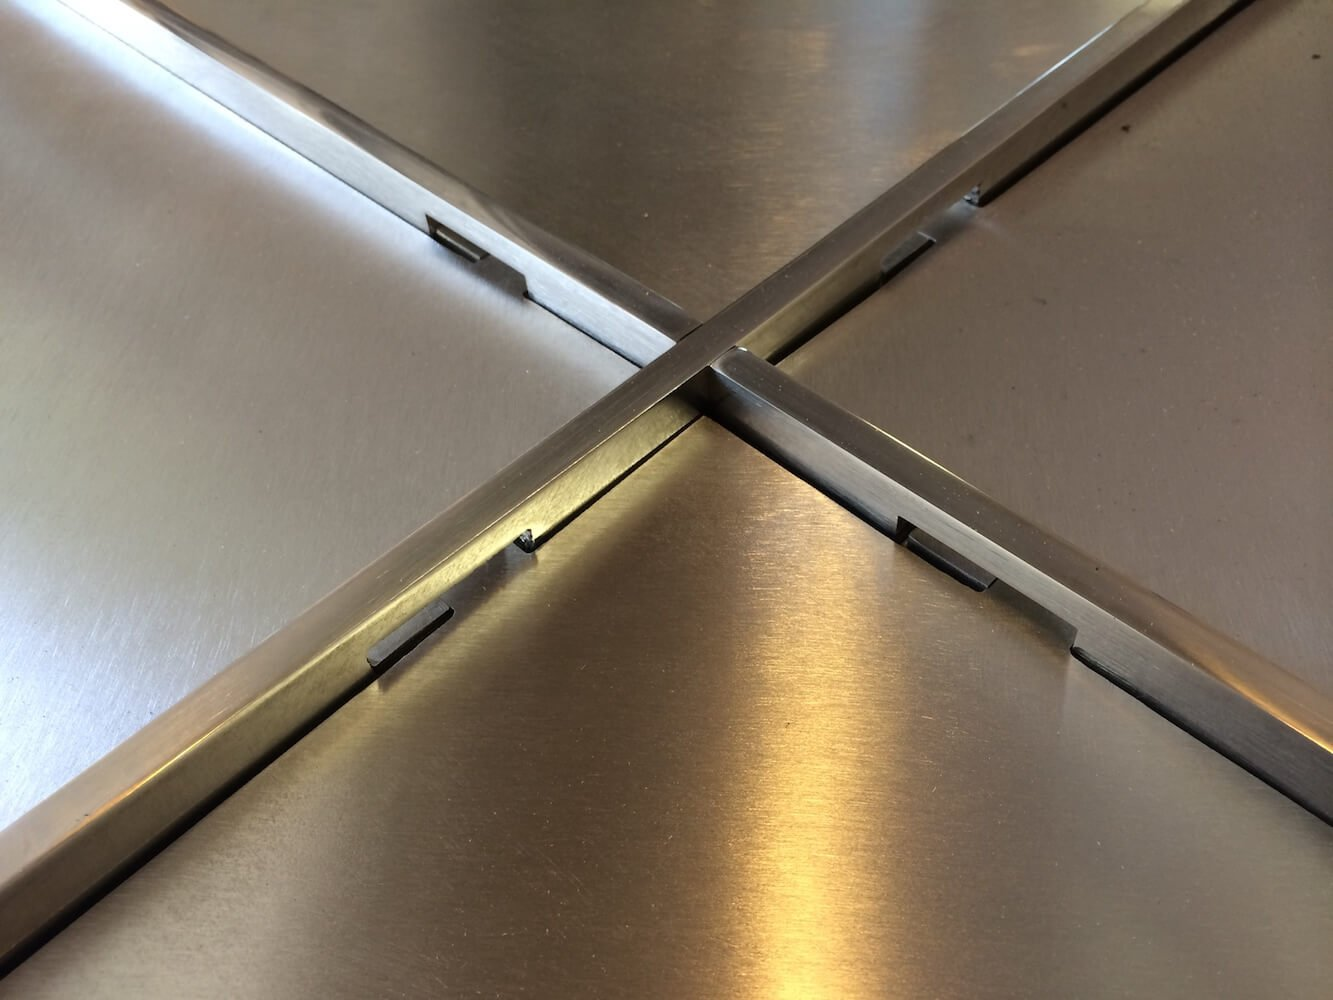 Stainless steel tabletop detail